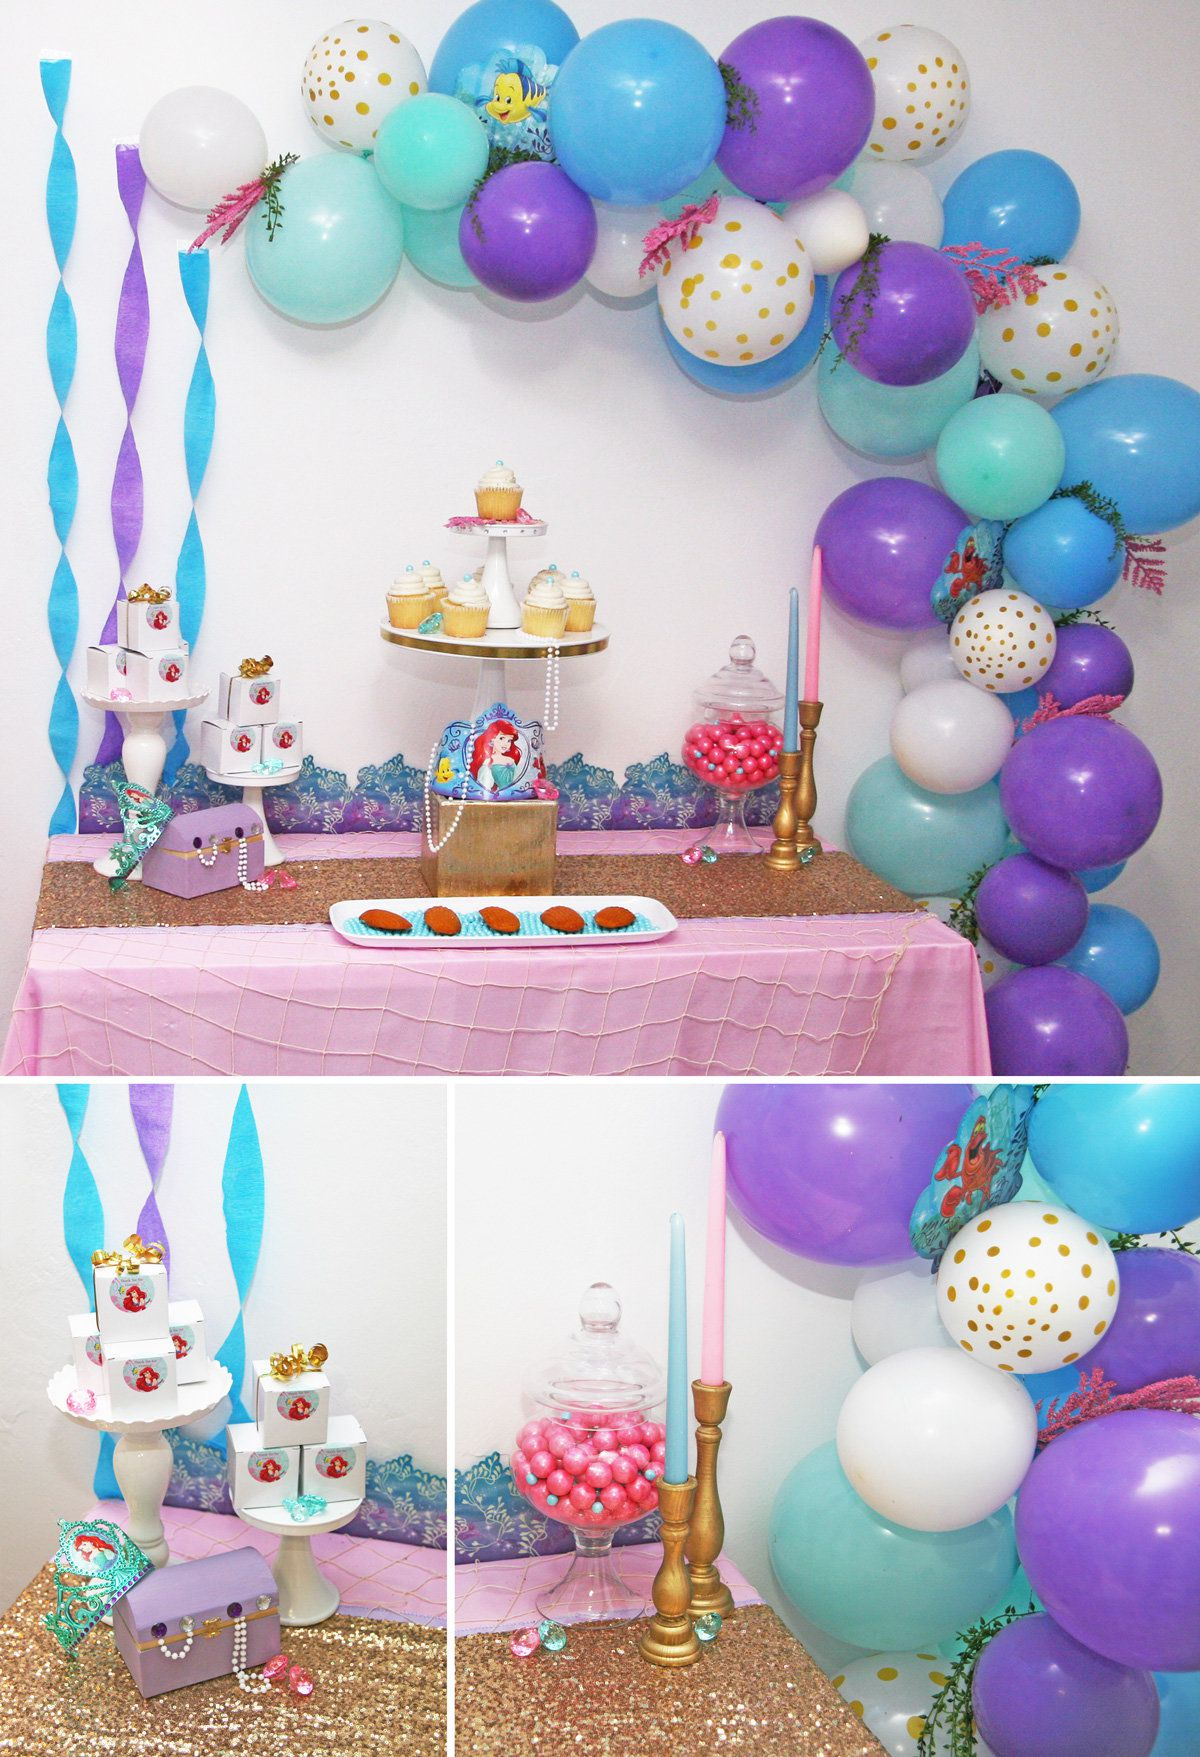 Little Mermaid Party Ideas | Disney Party Ideas at Birthday in a Box